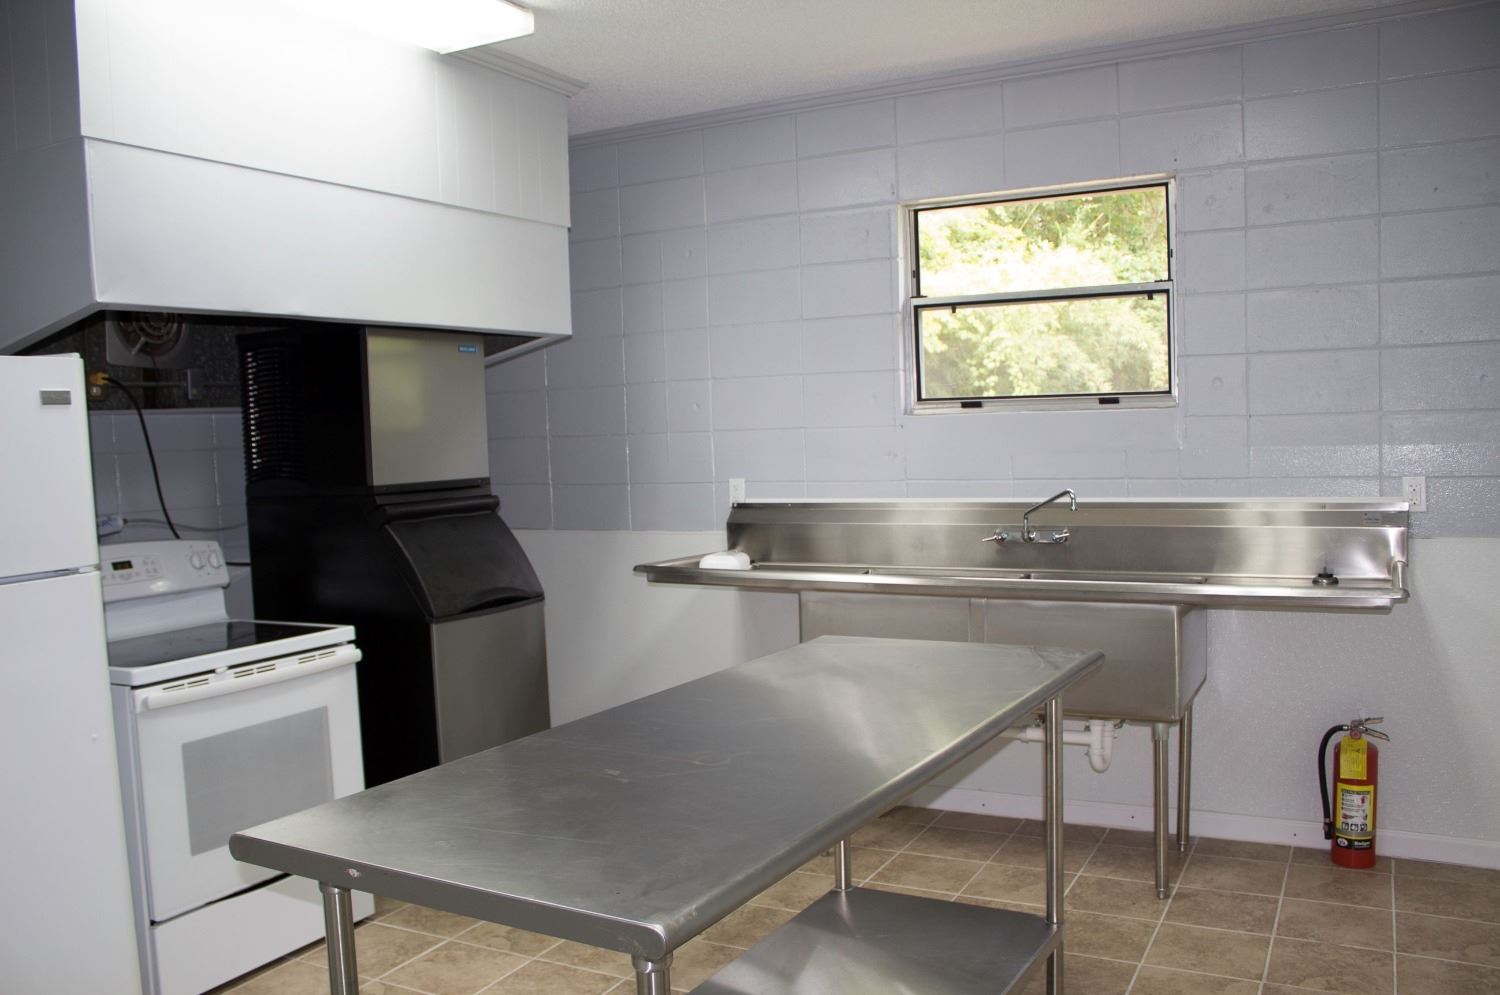 An image of a kitchen with a large stainless steel industrial sink and stainless steel table.